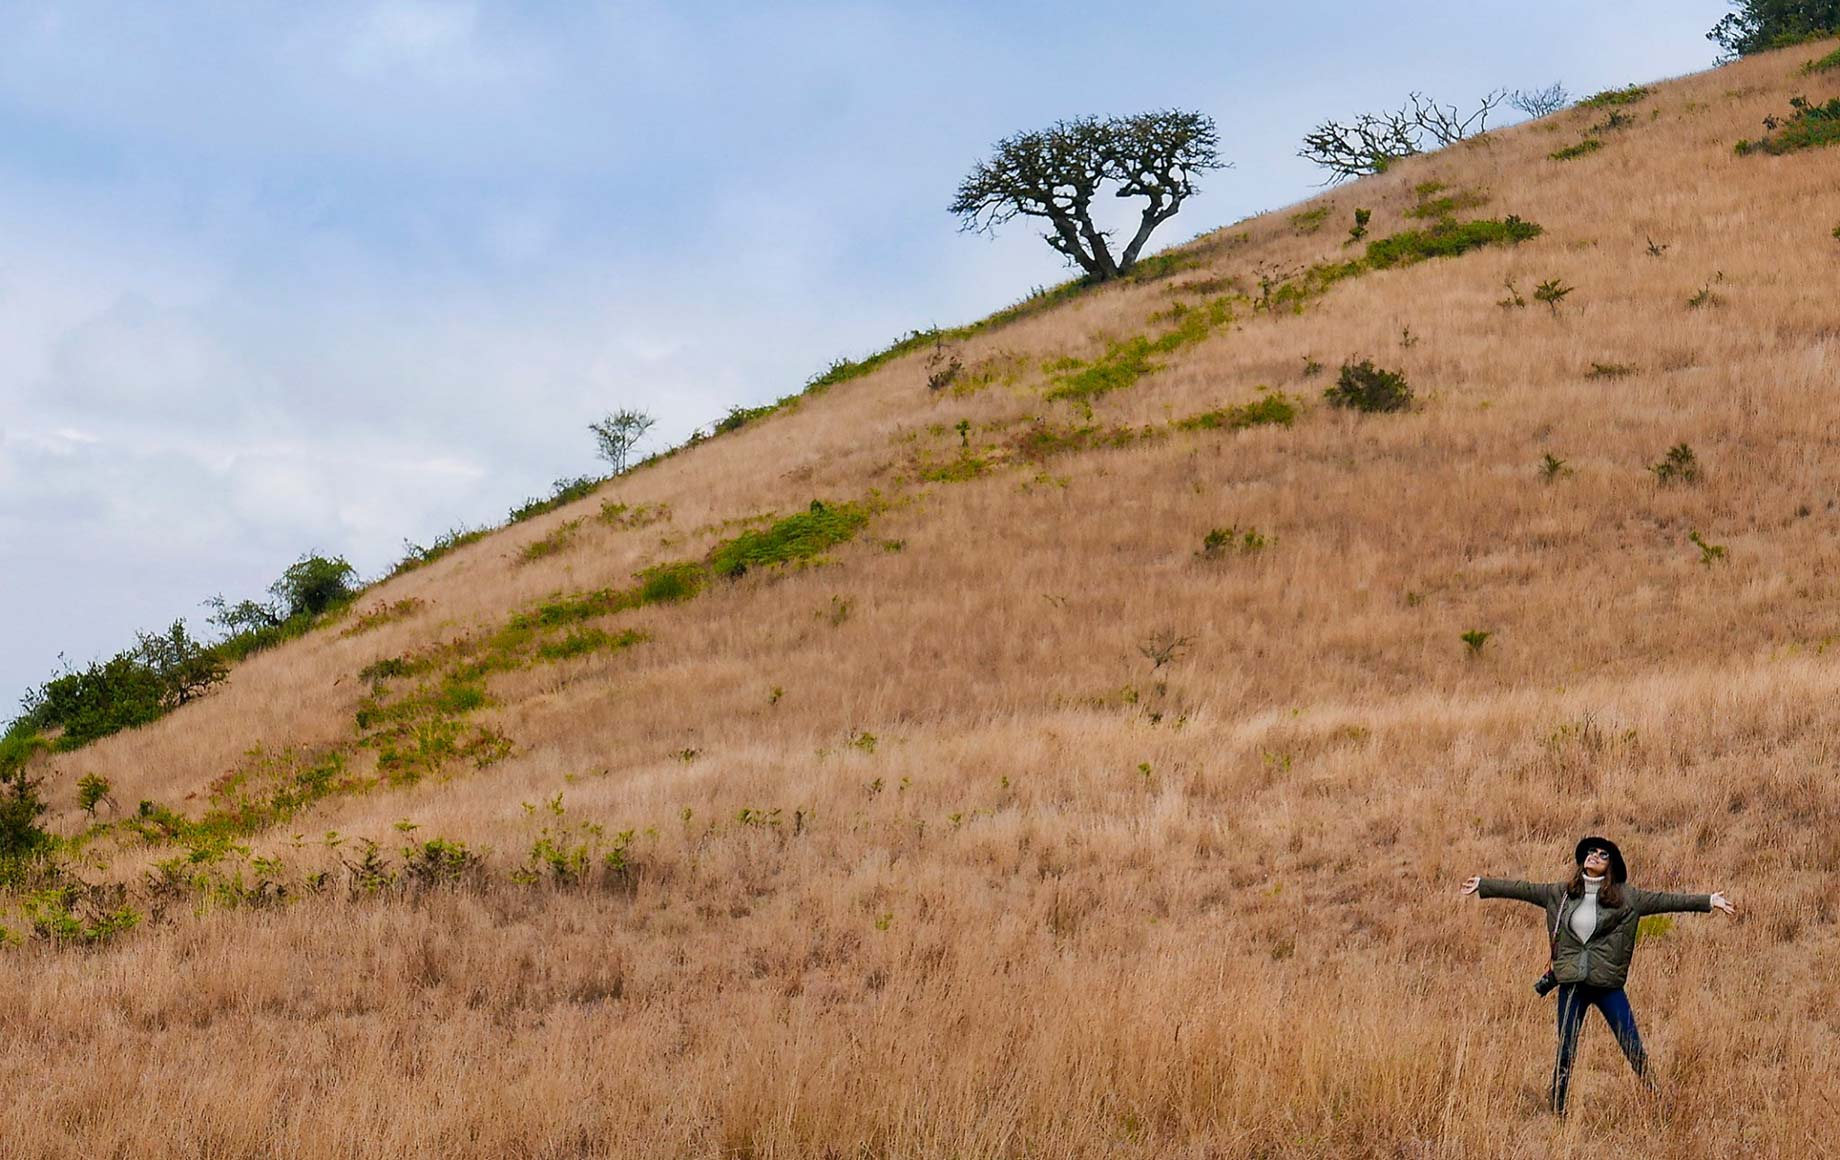 Woman enjoying freedom and fresh air at Chyulu Hills African Safari